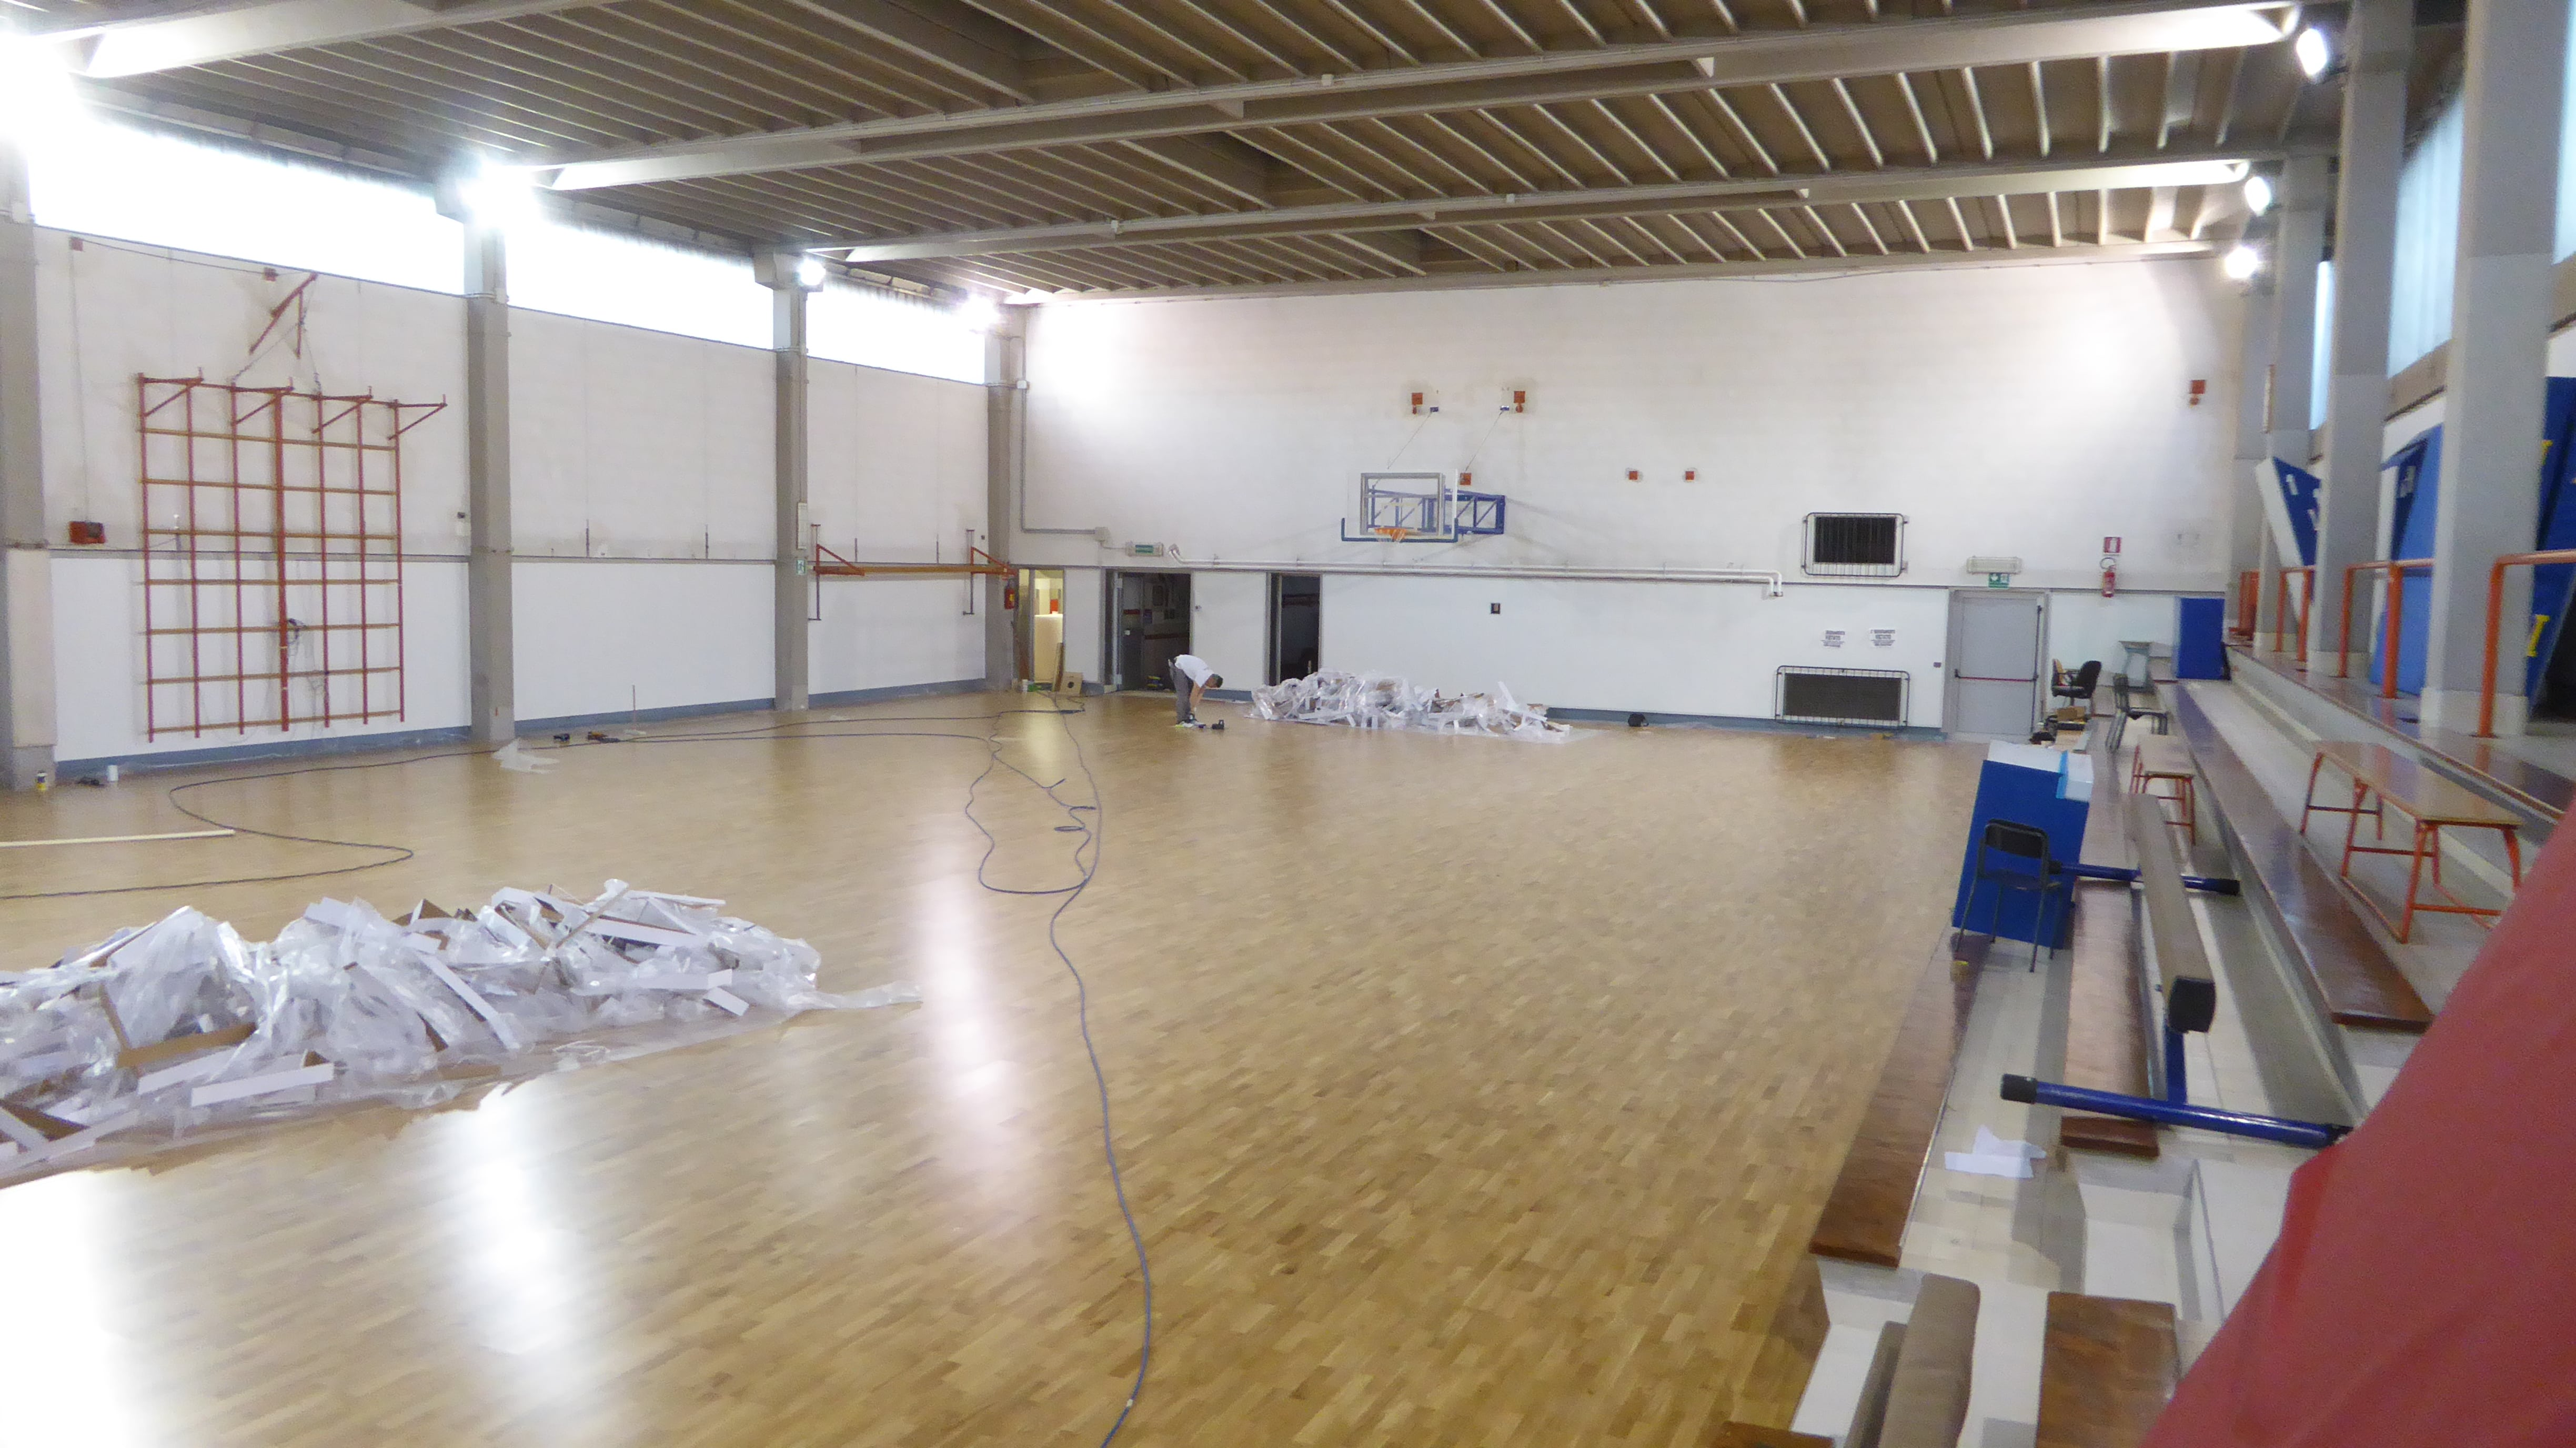 The installation of the parquet is completed